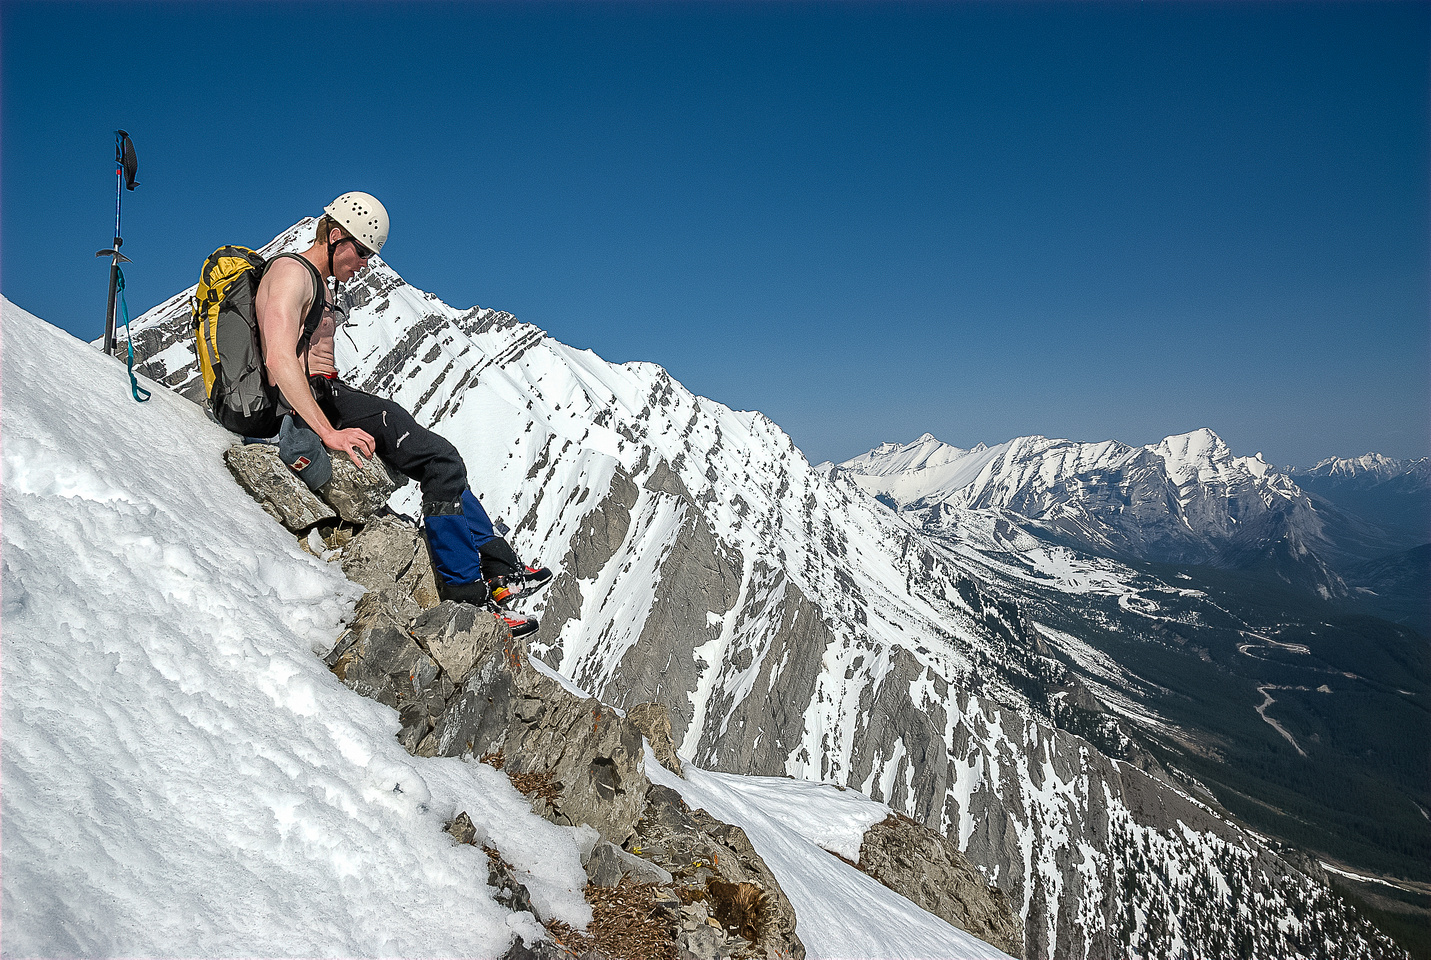 JW takes a break on ascent - obviously he's feeling hot here. ;)